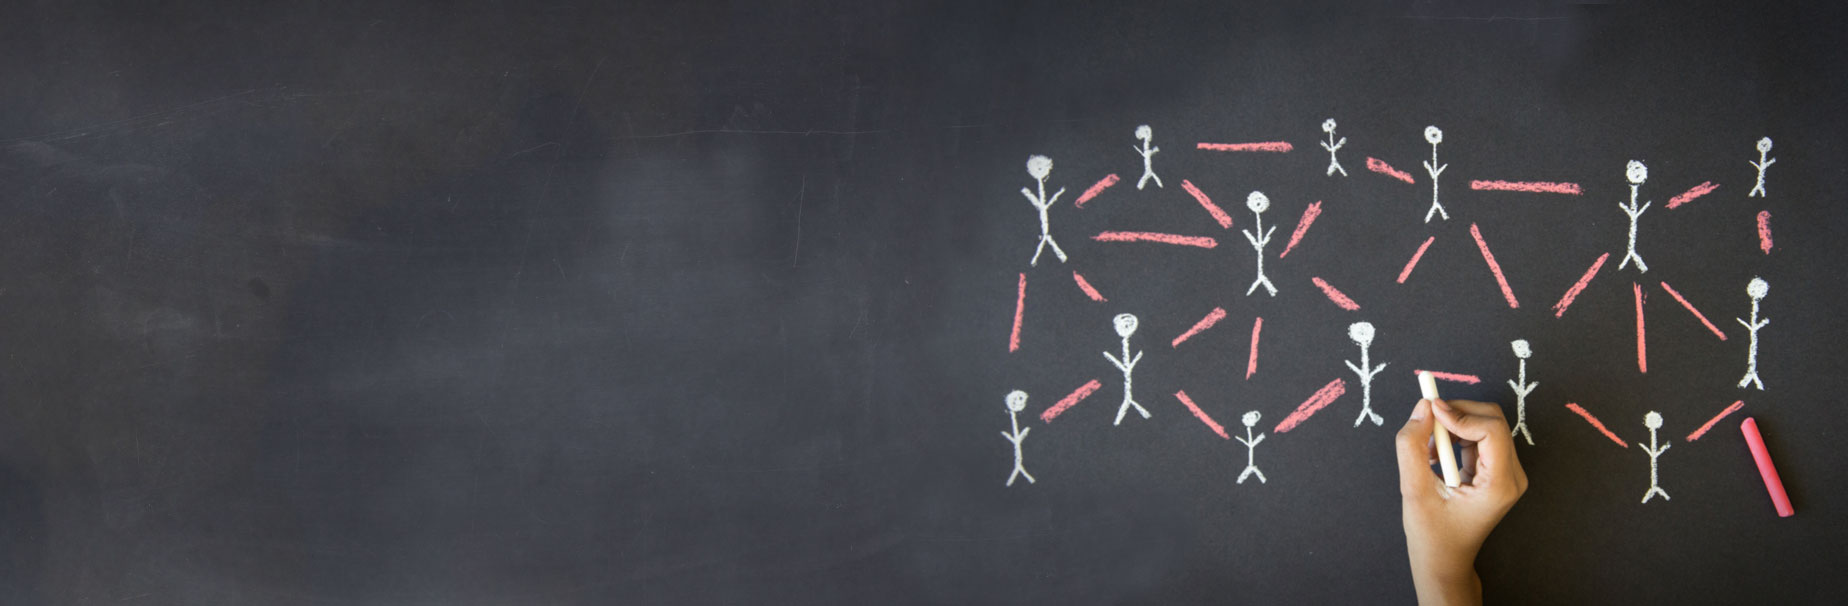 Person drawing people connected to one another on chalkboard to symbolize the importance of having Third Party Administrators